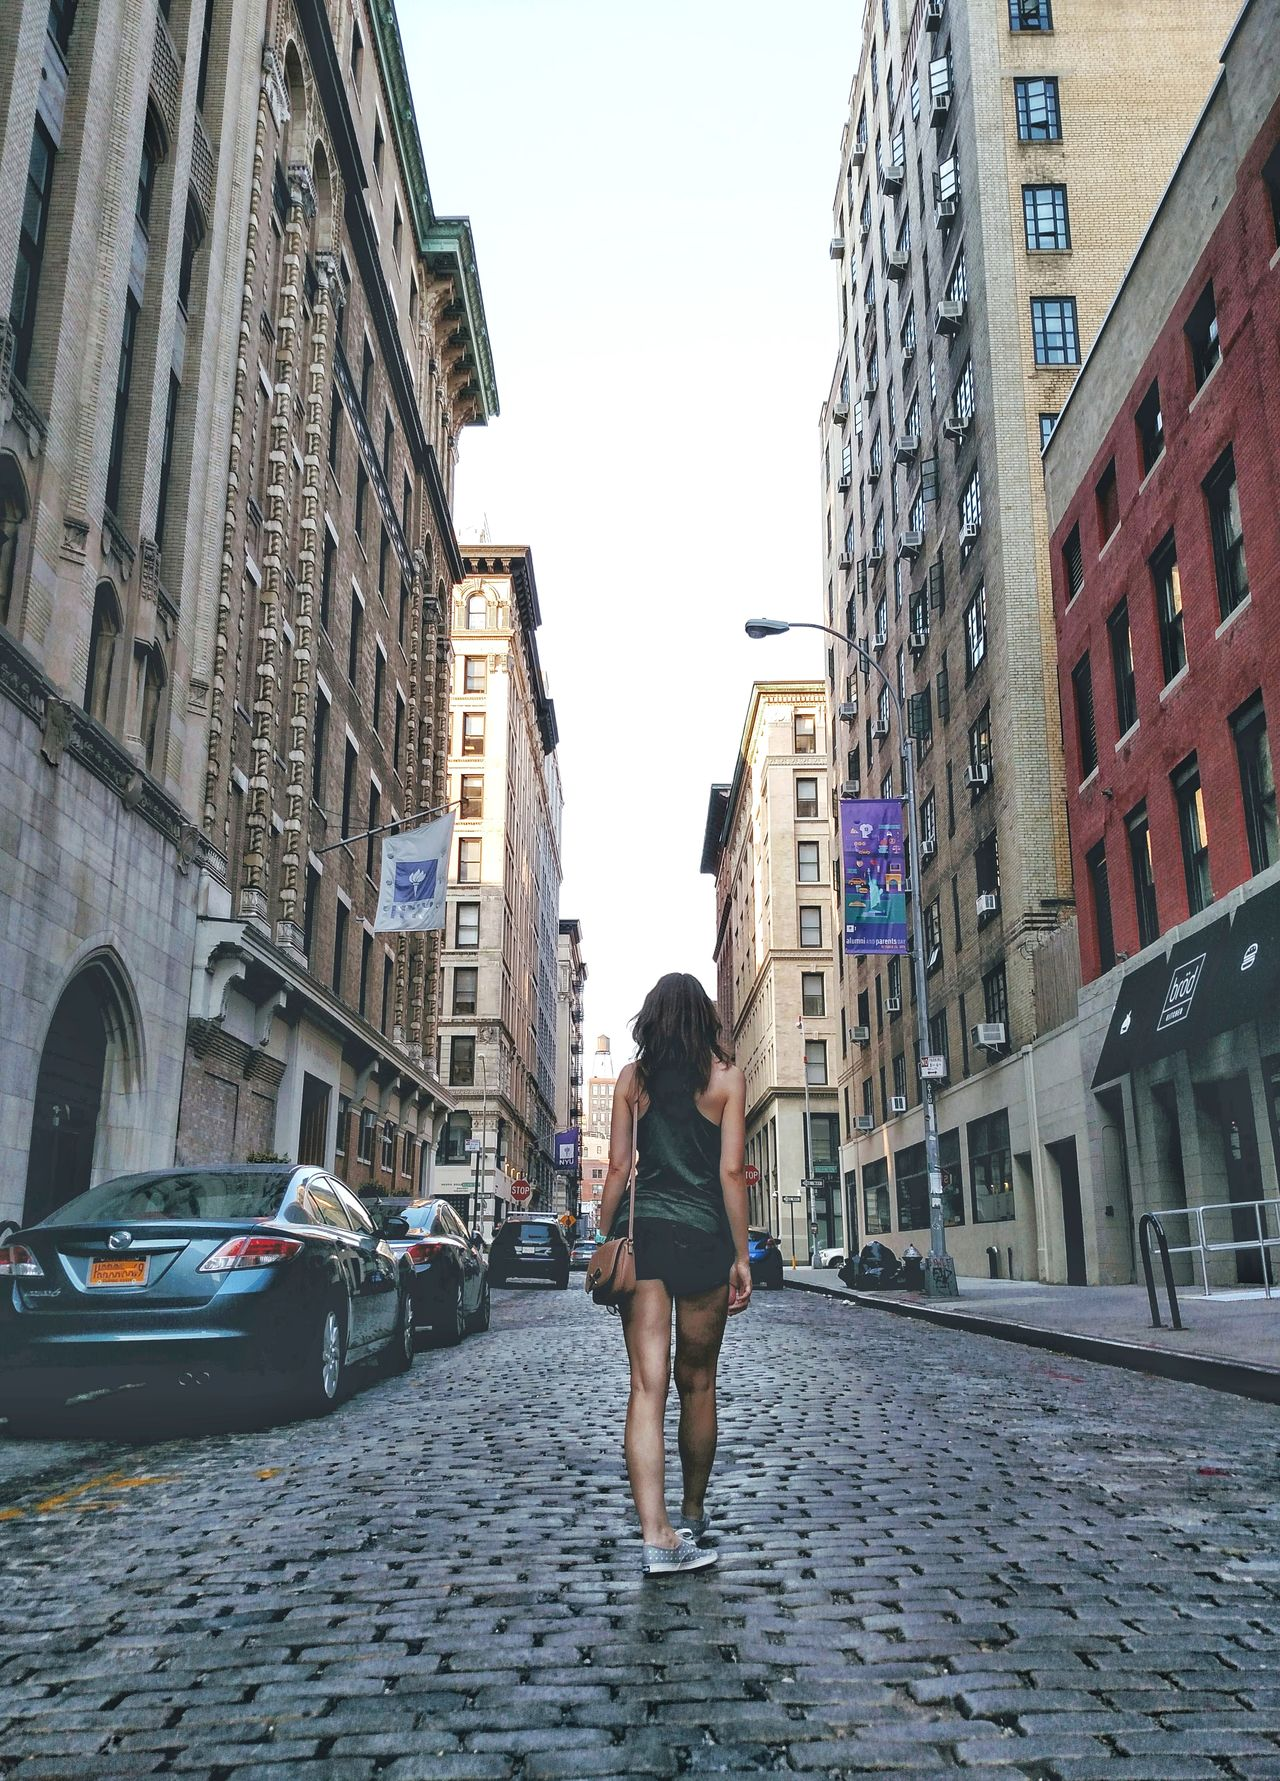 Architecture City Building Exterior Travel Destinations Street Built Structure People One Person Full Length Adults Only Outdoors Only Women Women One Woman Only Adult Day One Young Woman Only NYC Facade Building Urban New York City Manhattan Perspective Brick Wall Downtown